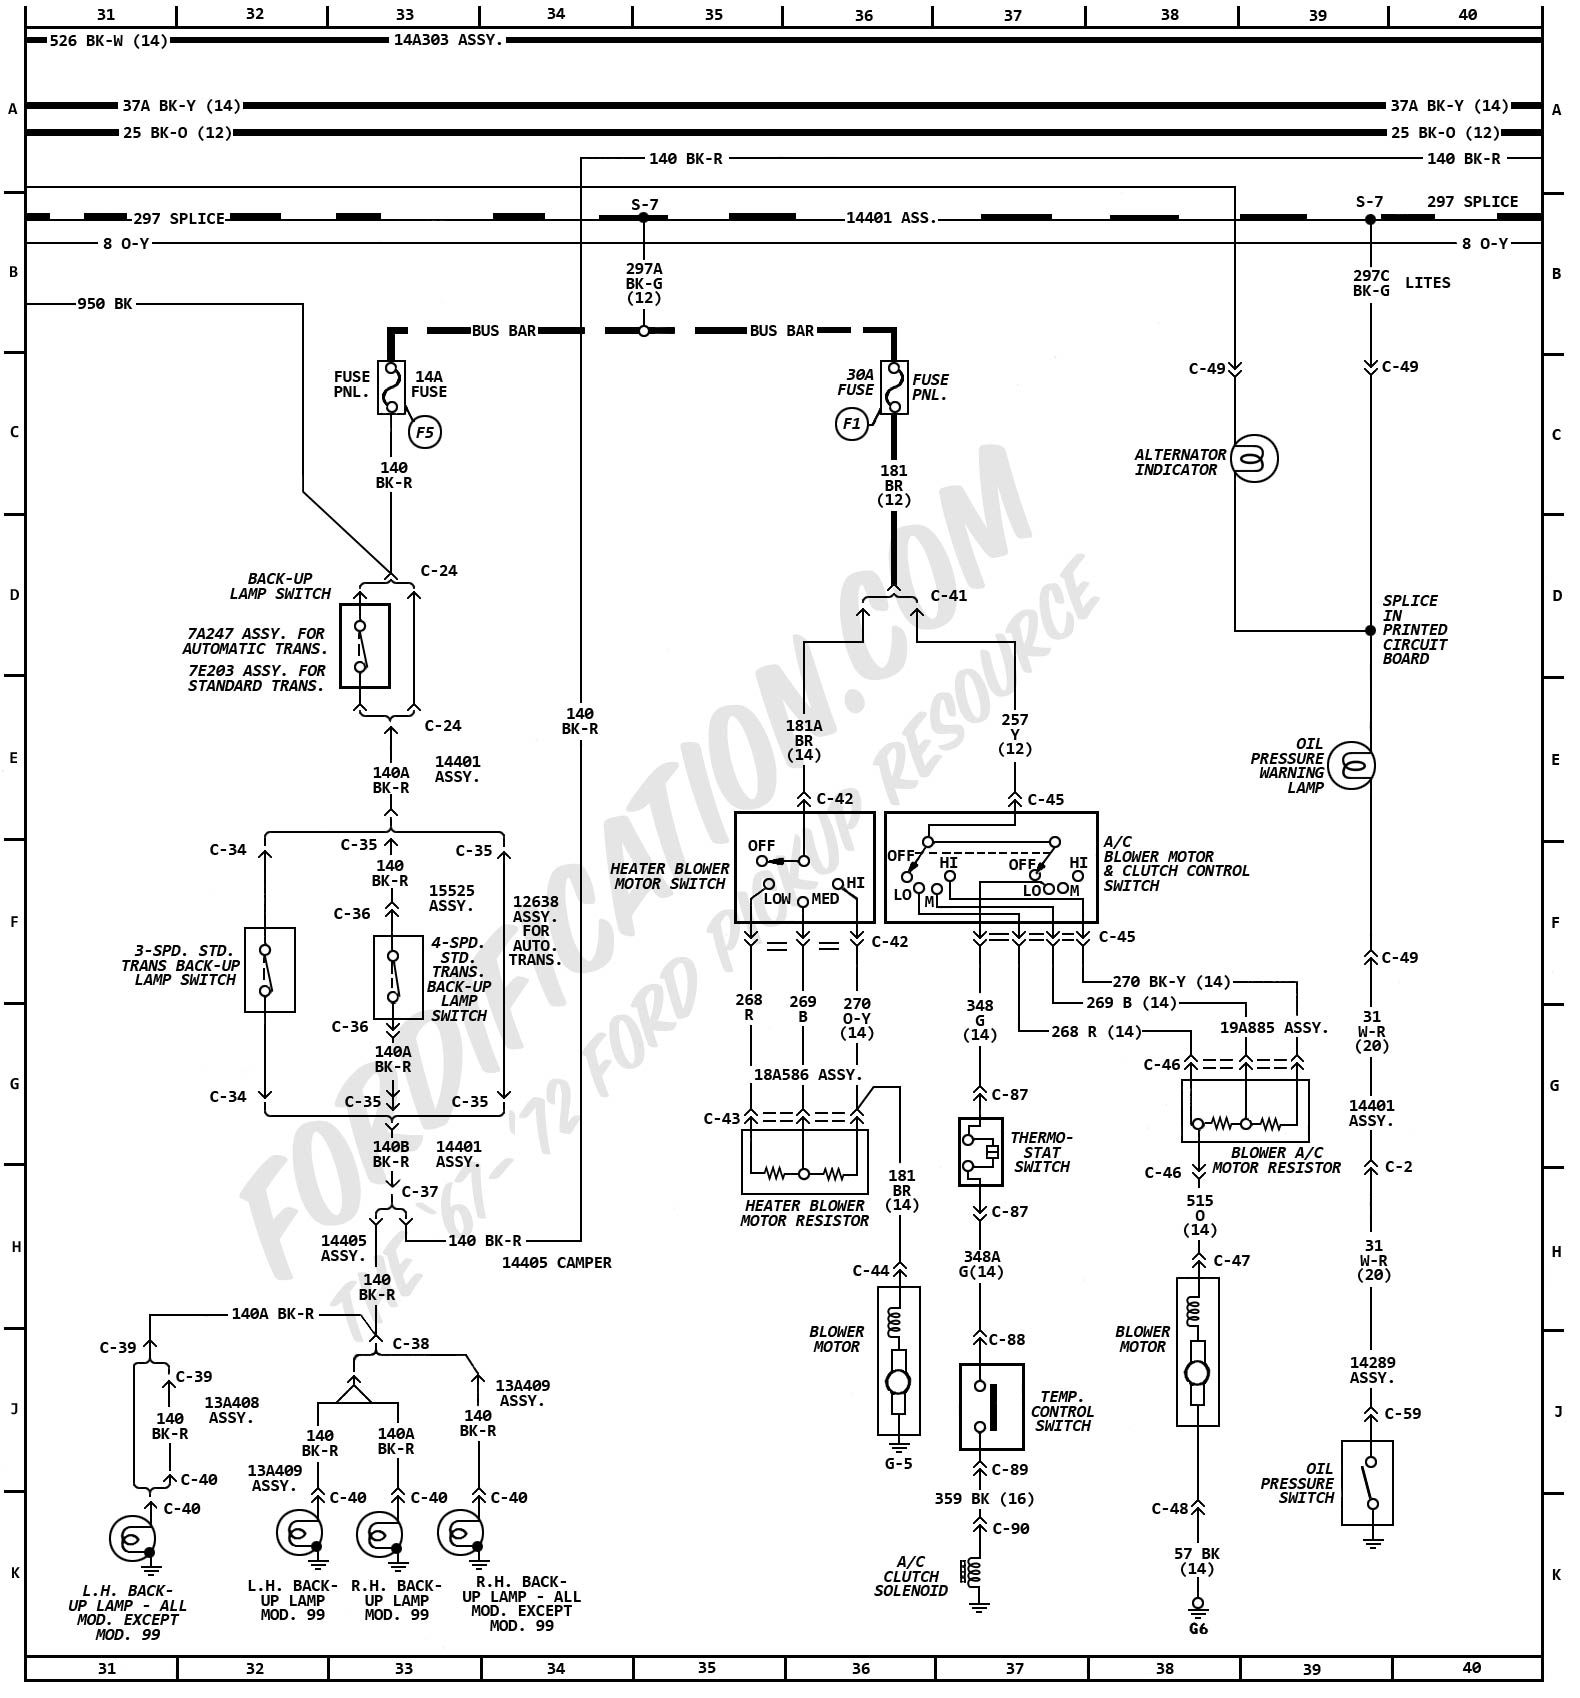 1972 Ford F100 Wiring Schematics Archive Of Automotive 1970 Light Switch Diagram Truck Diagrams Fordification Com Rh Ignition